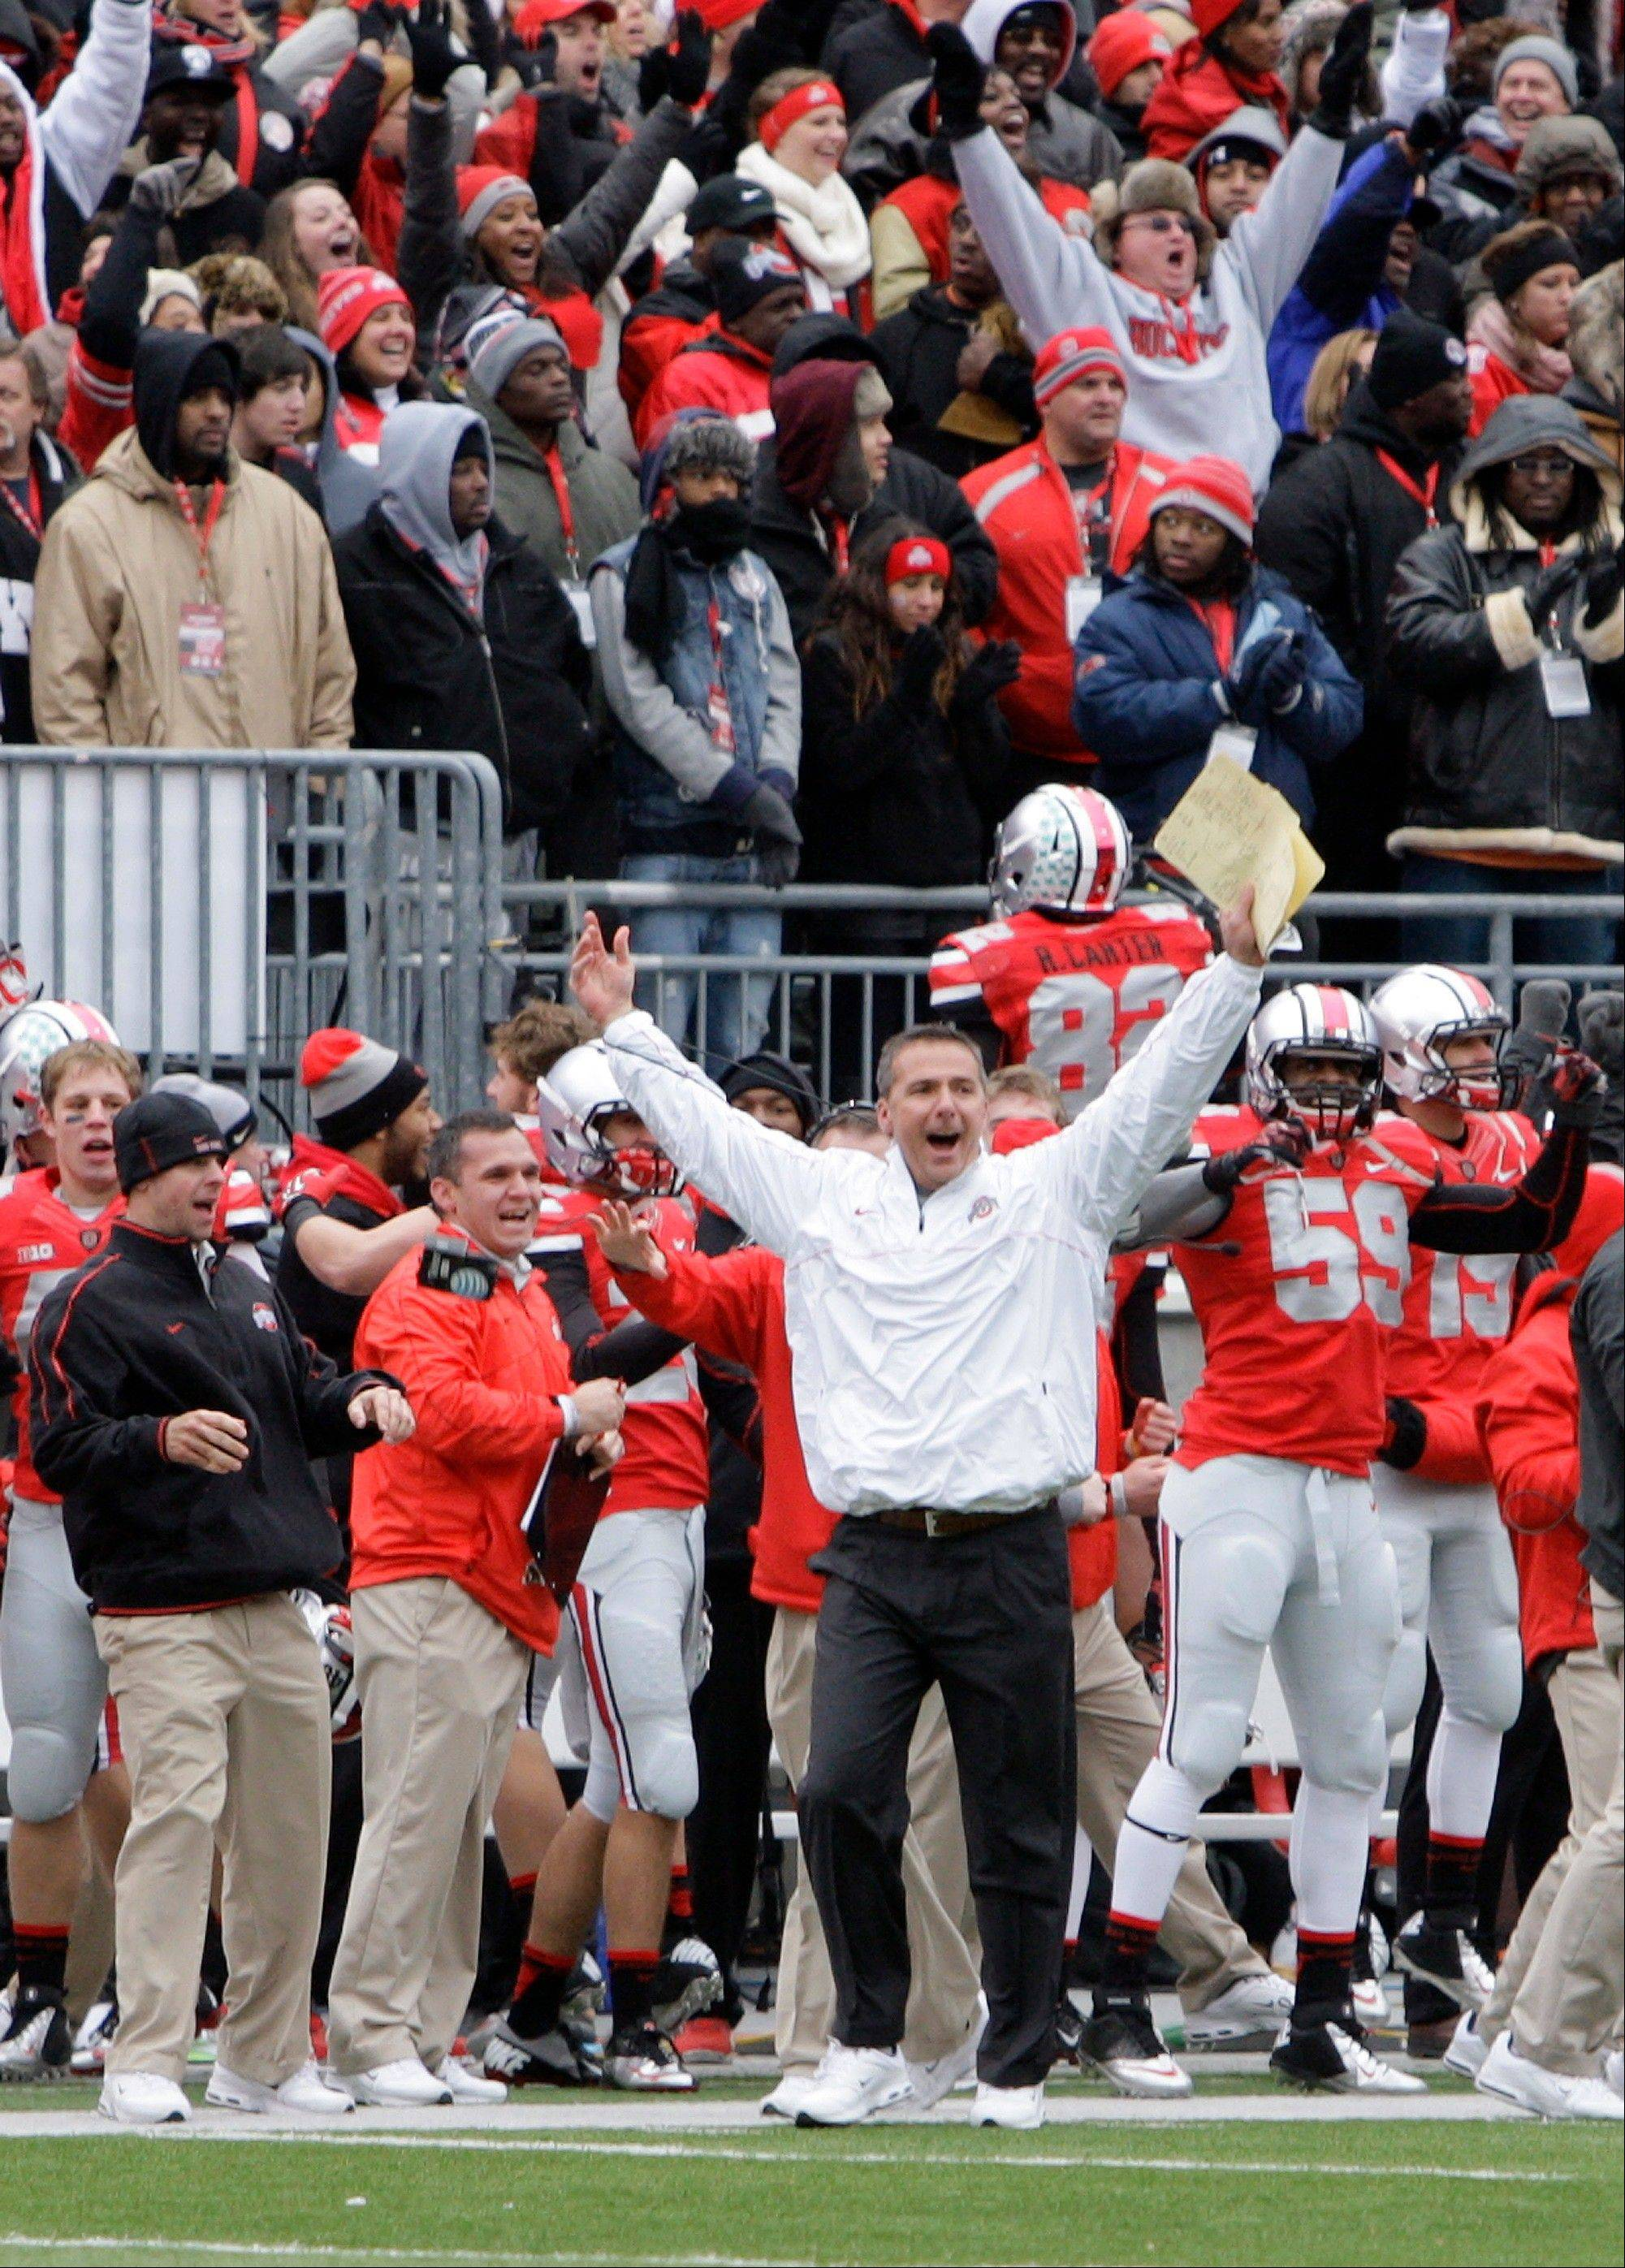 Buckeyes go 12-0, but their season is done